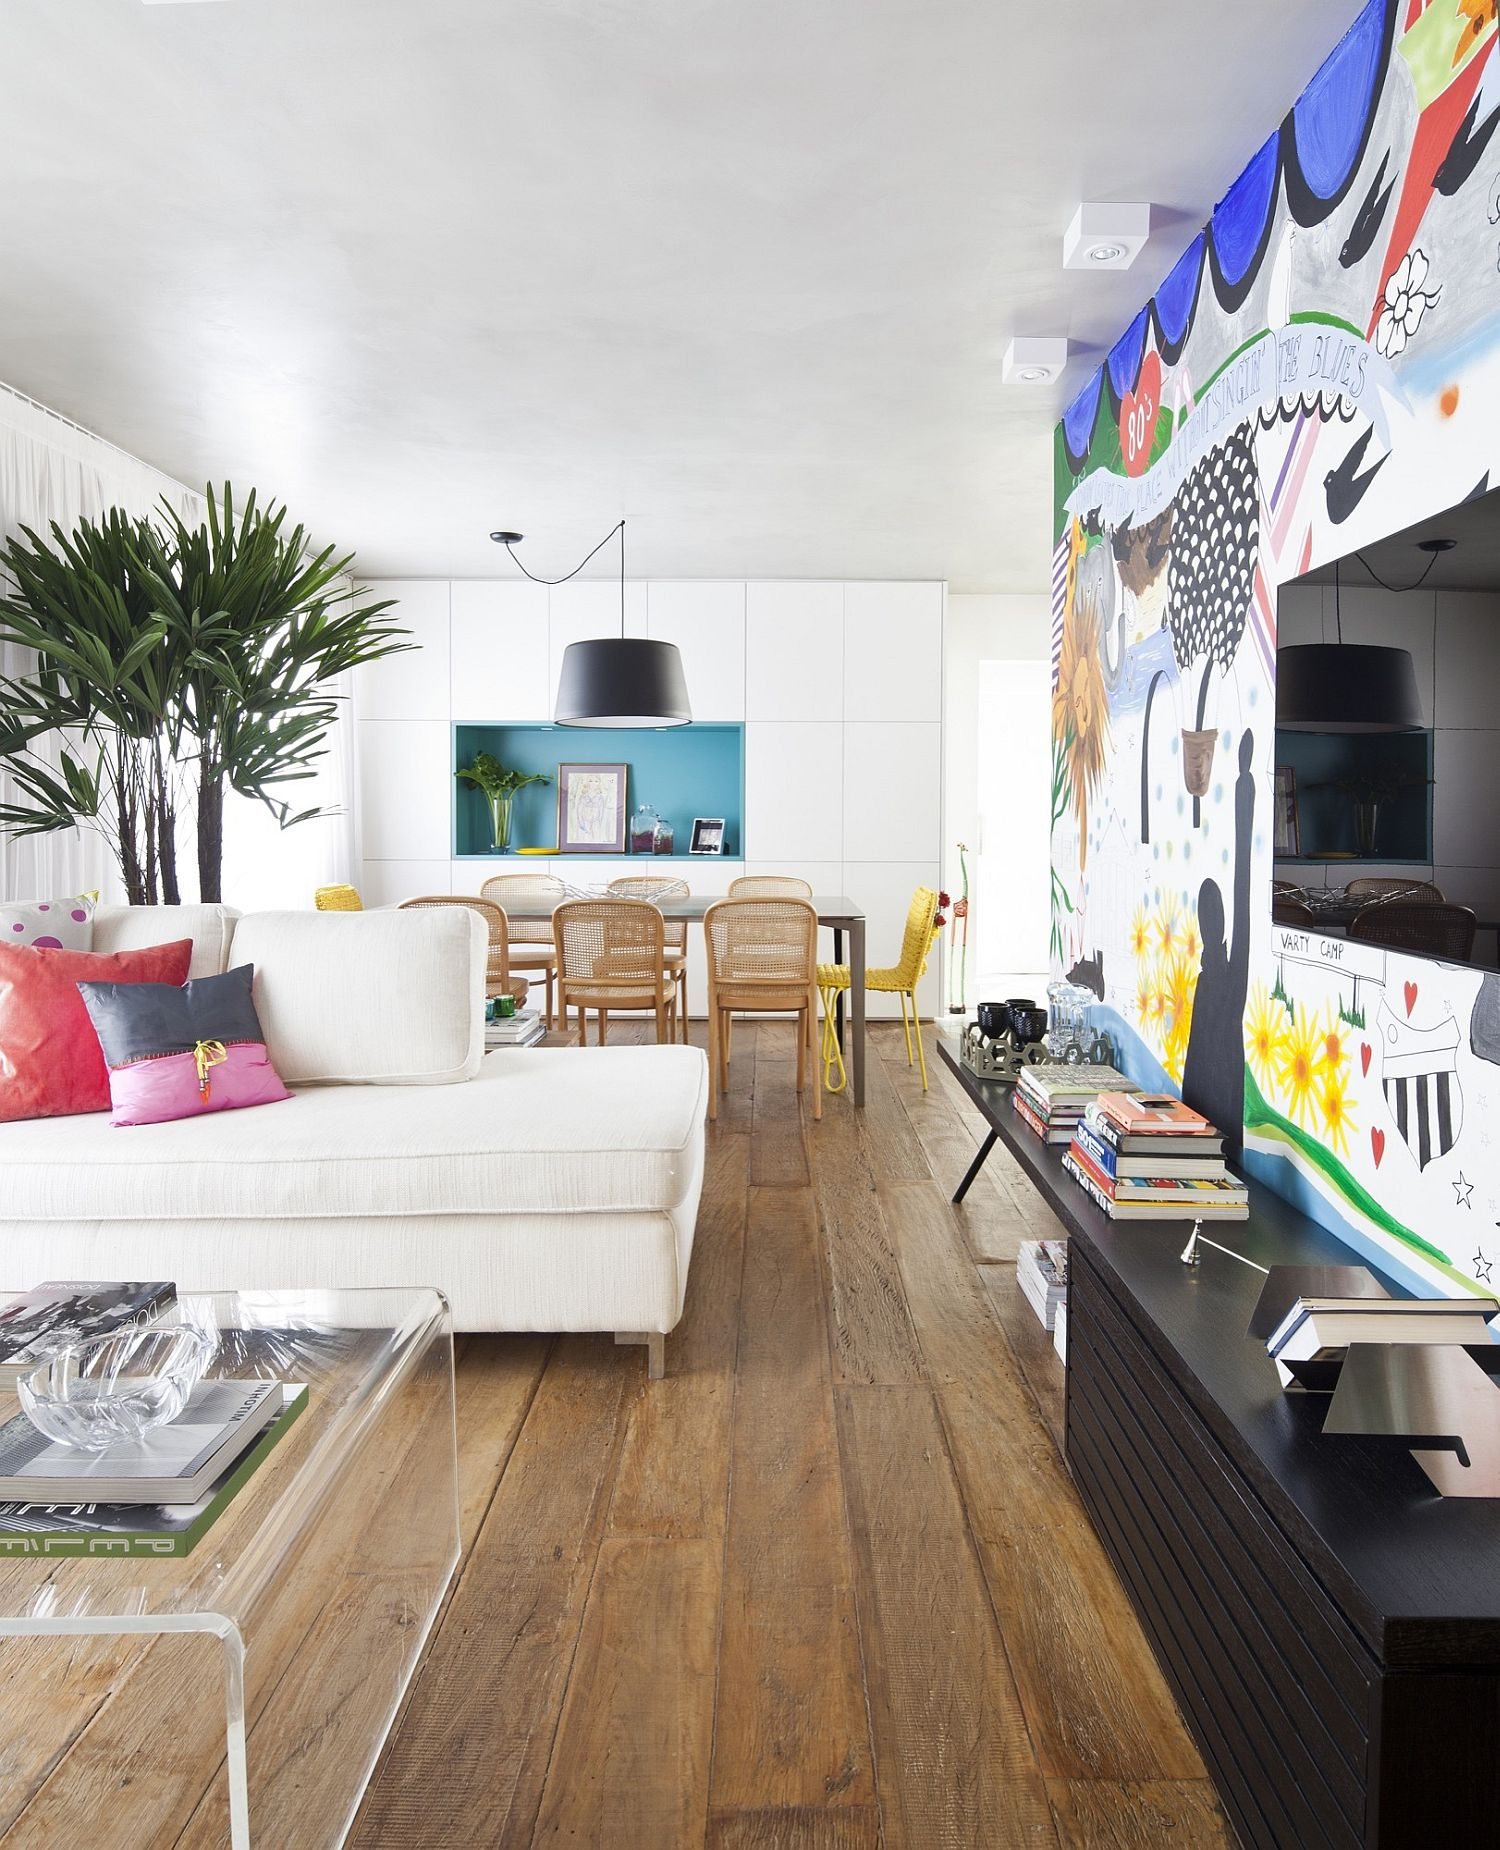 Colorful modern apartment in Vila Mariana Sao Paulo An Interior Full of Flamboyance: Vibrant and Chic Apartment Capela